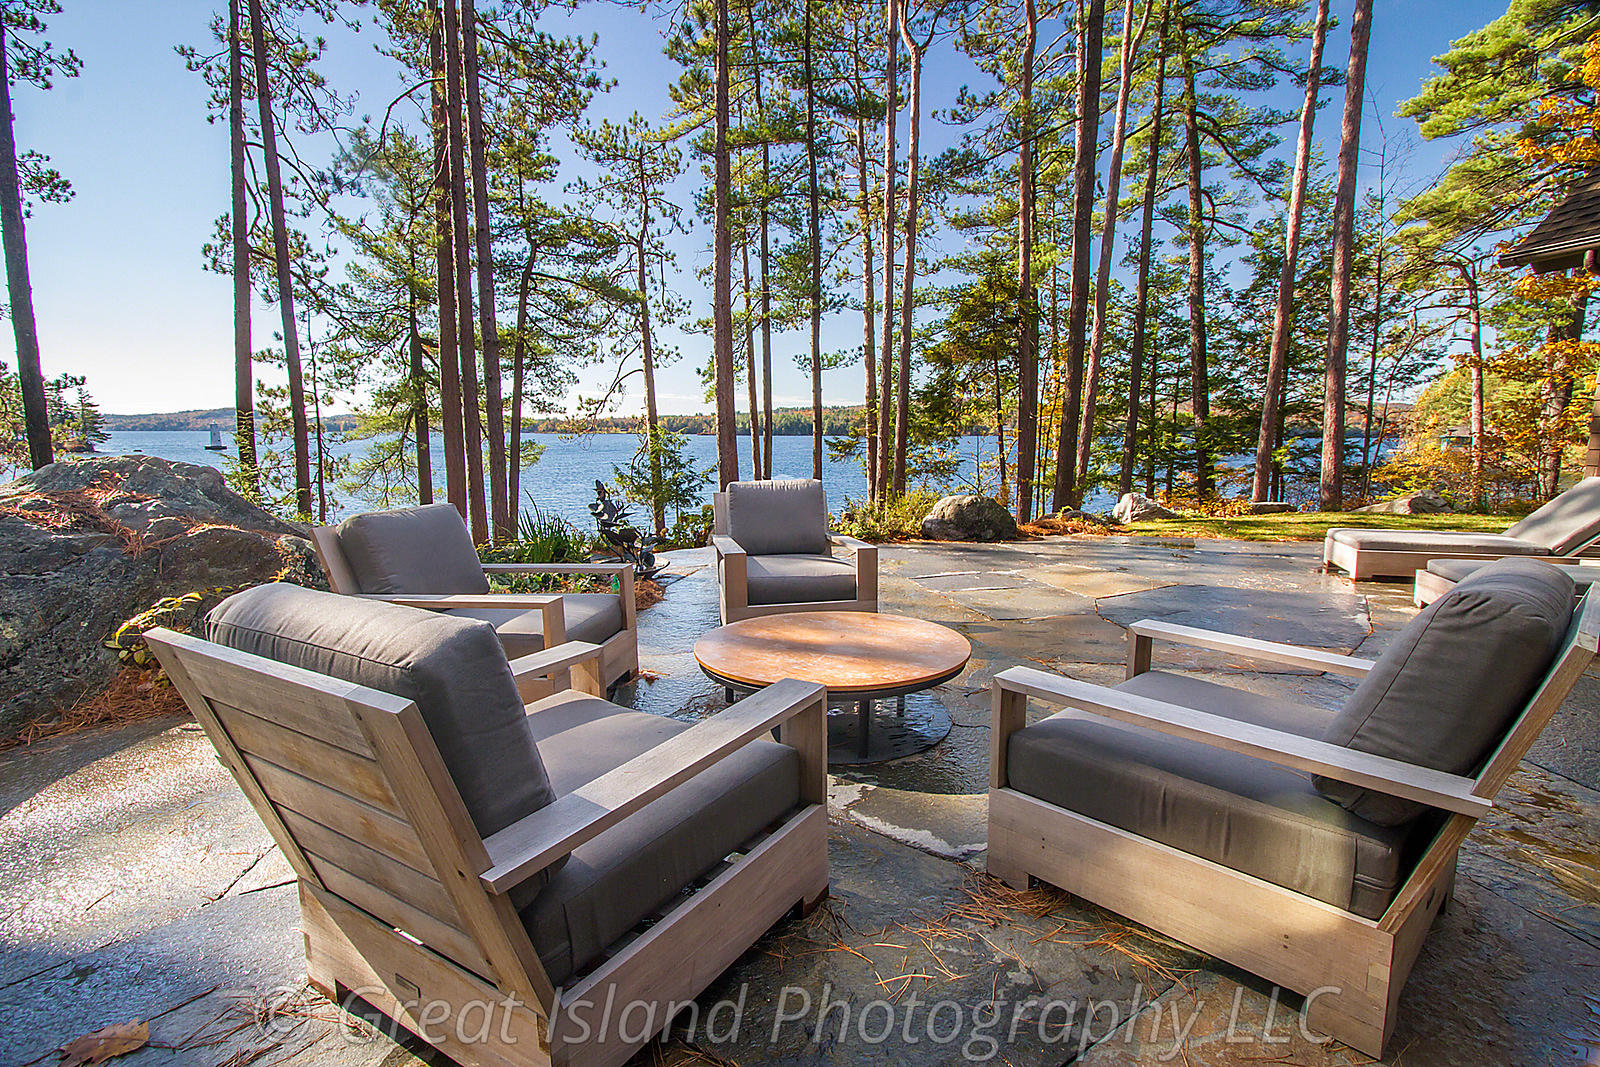 Landscape Architecture Photography